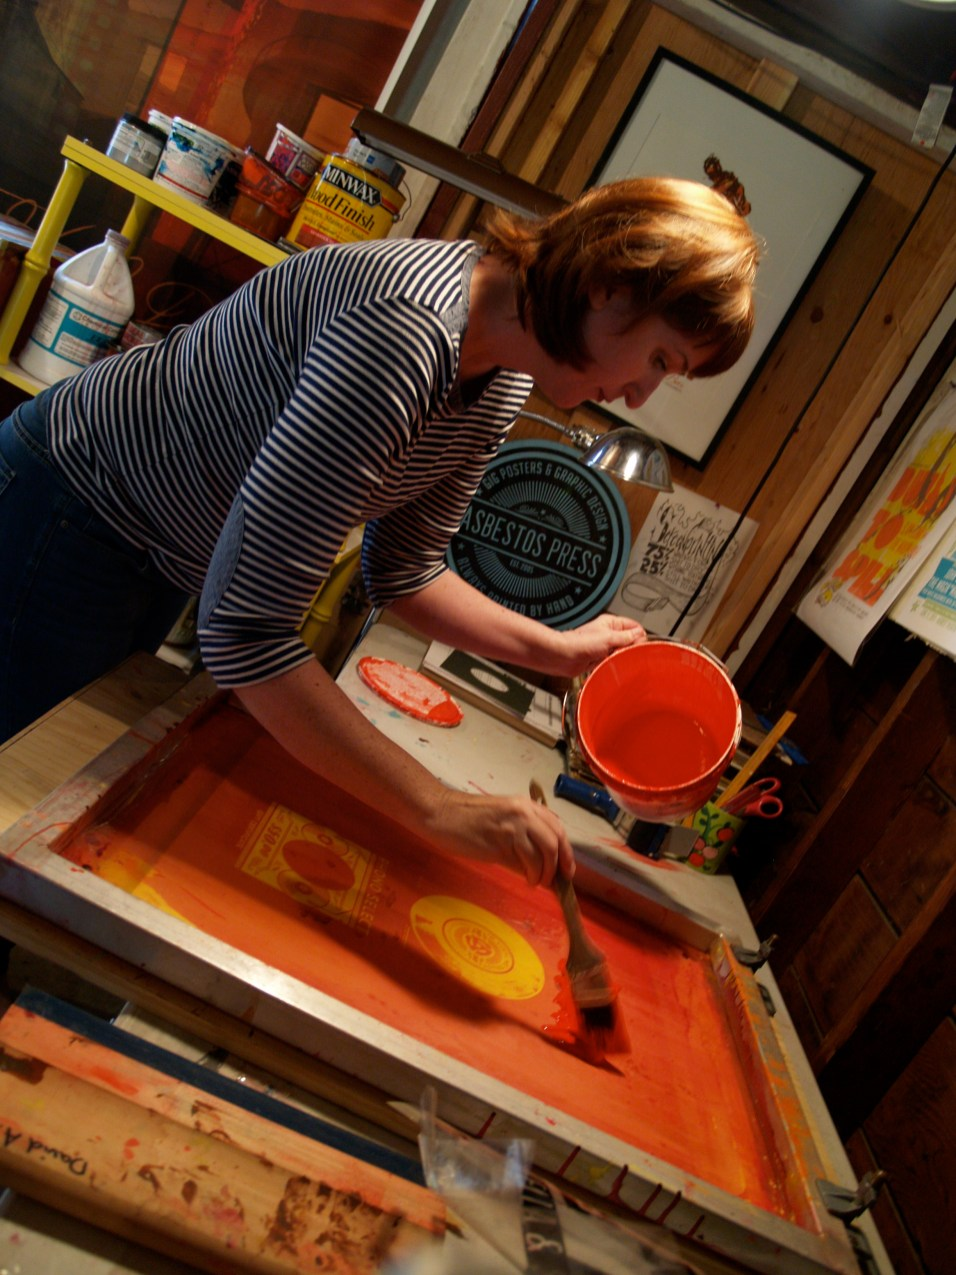 Asbestos Press owner and artist Laura Matranga works on a print in her Sacramento studio.